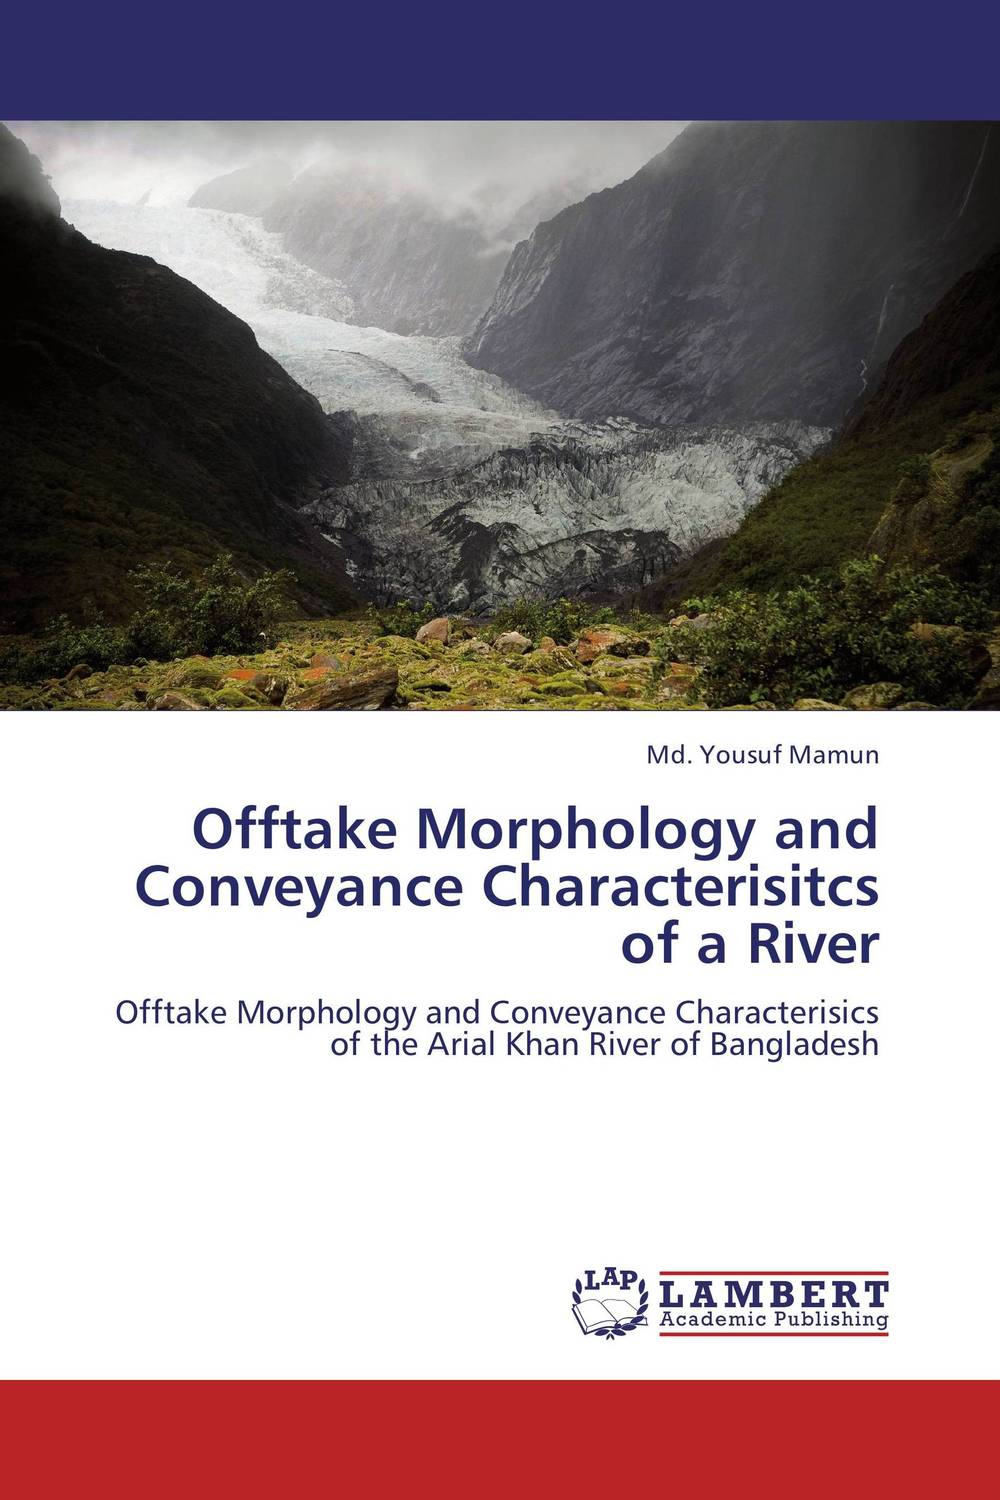 Offtake Morphology and Conveyance Characterisitcs of a River